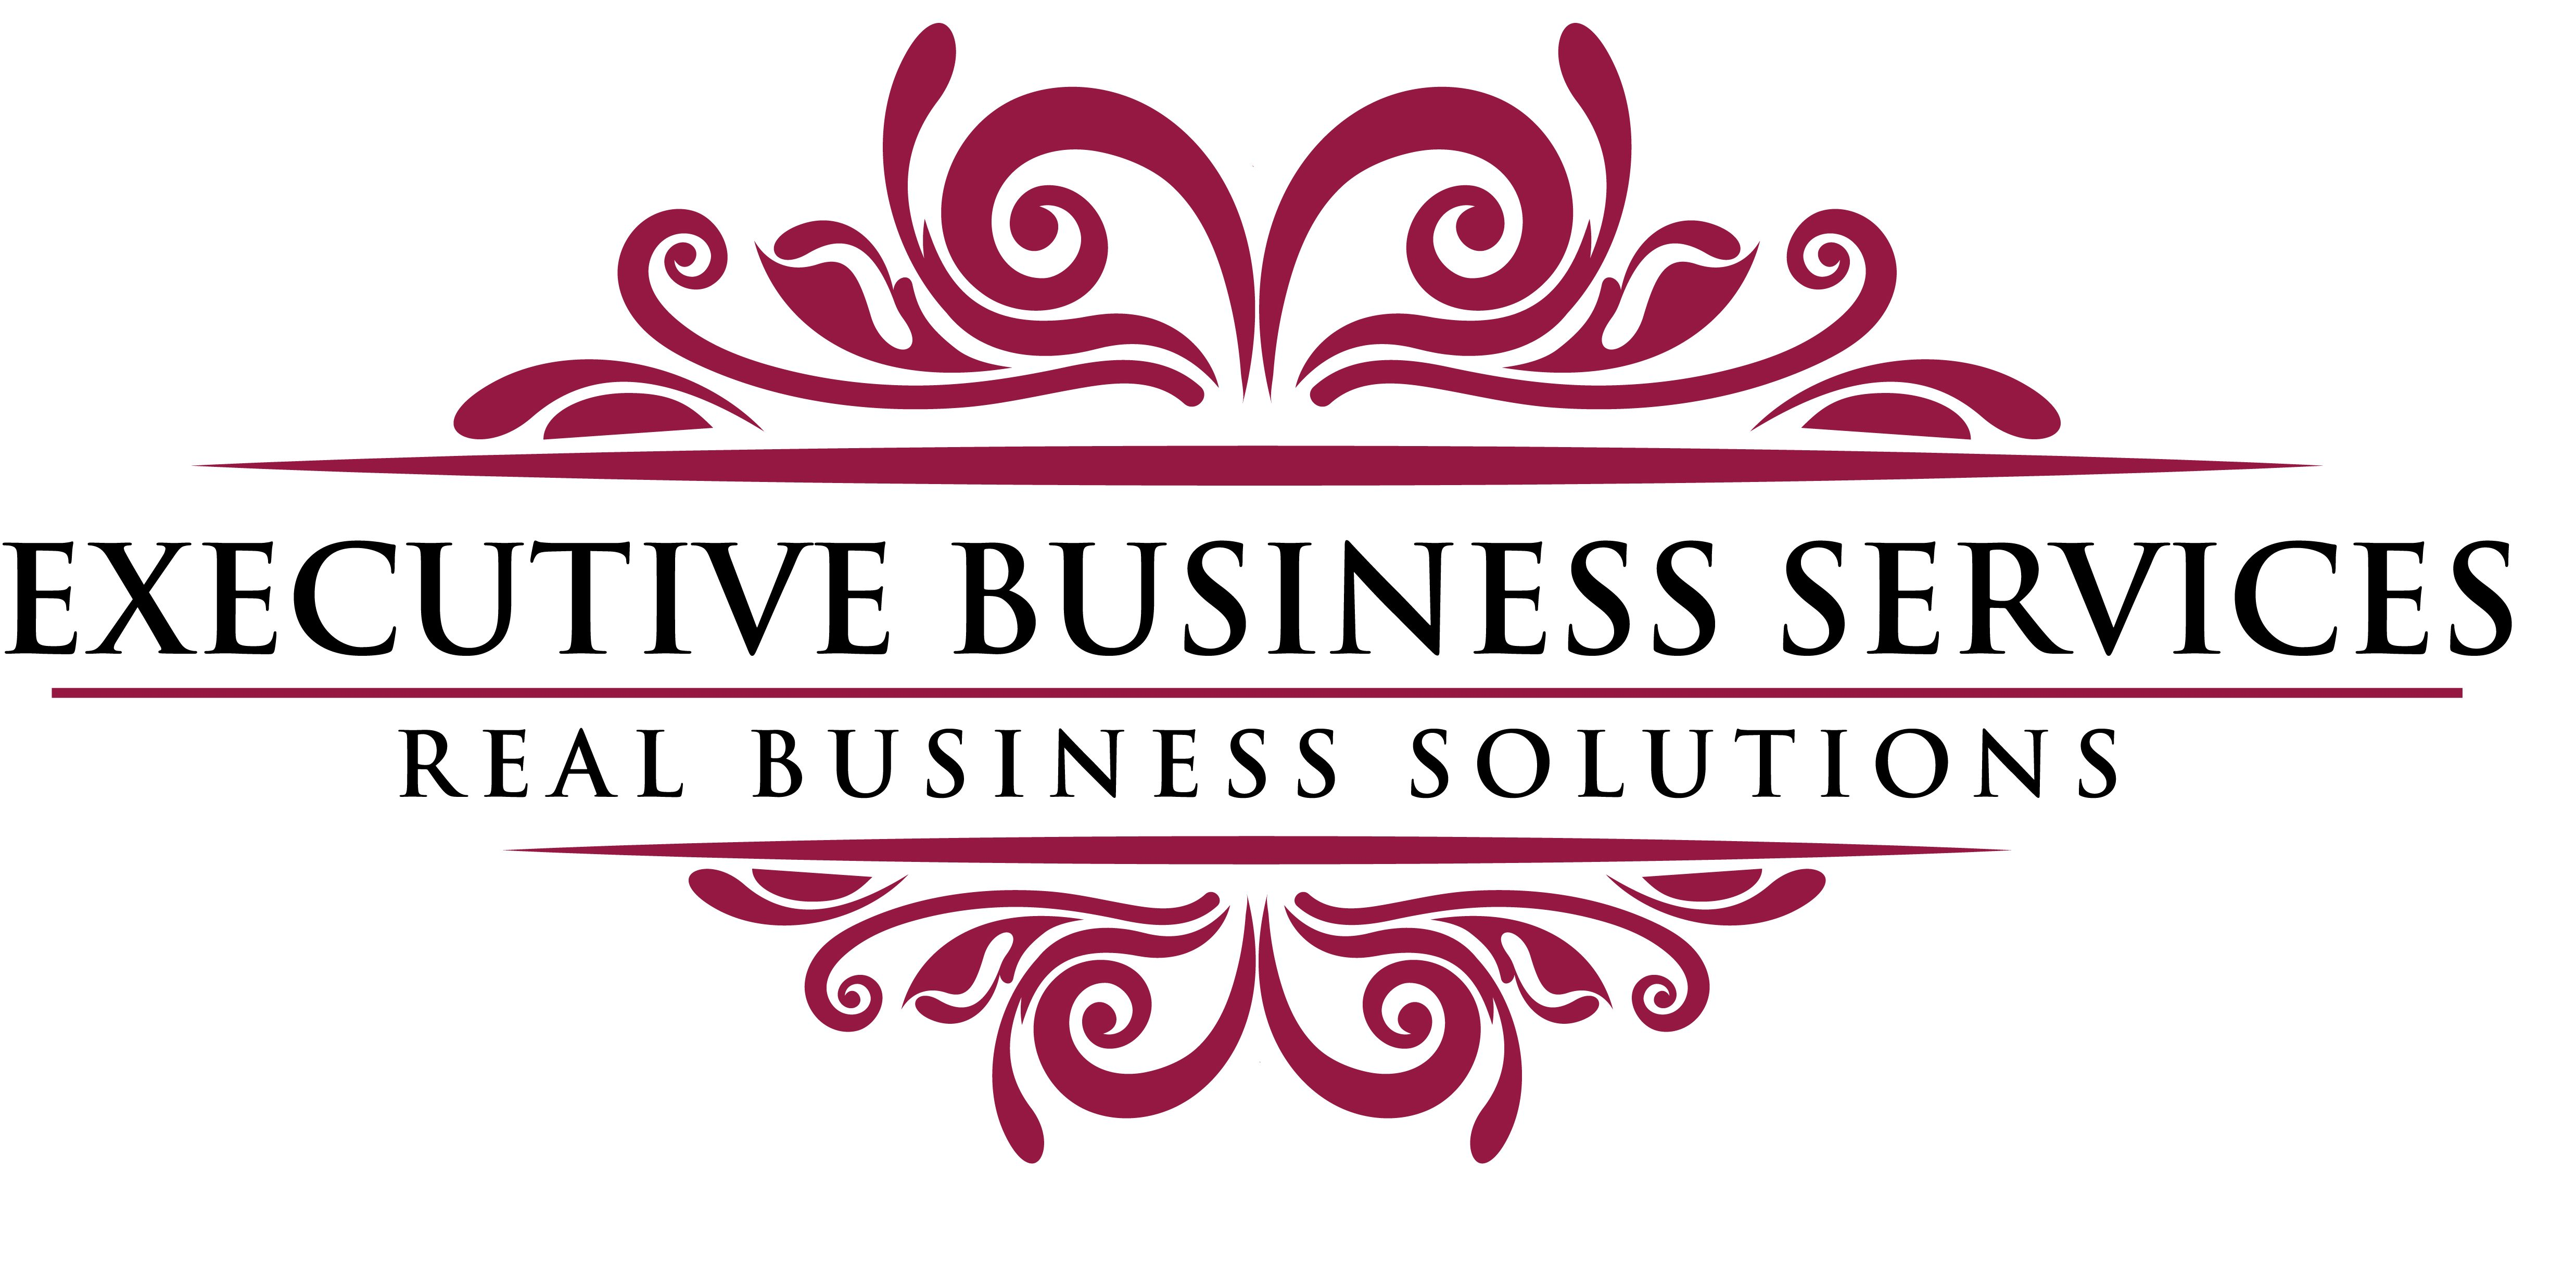 Virtual Assisting and Business Advisory Firm